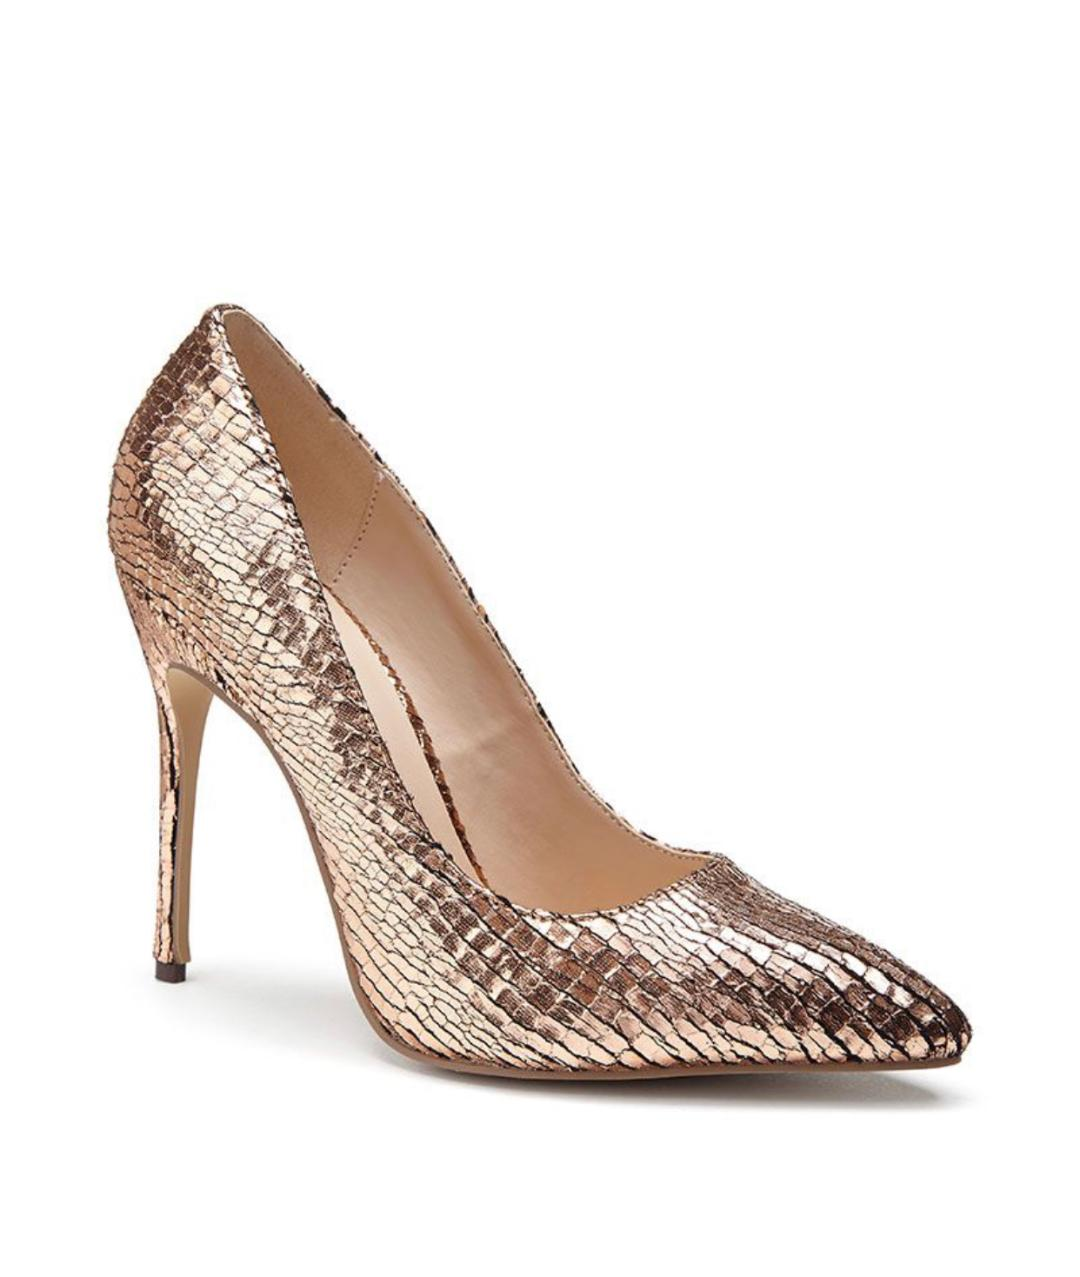 Pink Paradox Cairo - Rose Gold Metallic Python Print Court Shoe 1